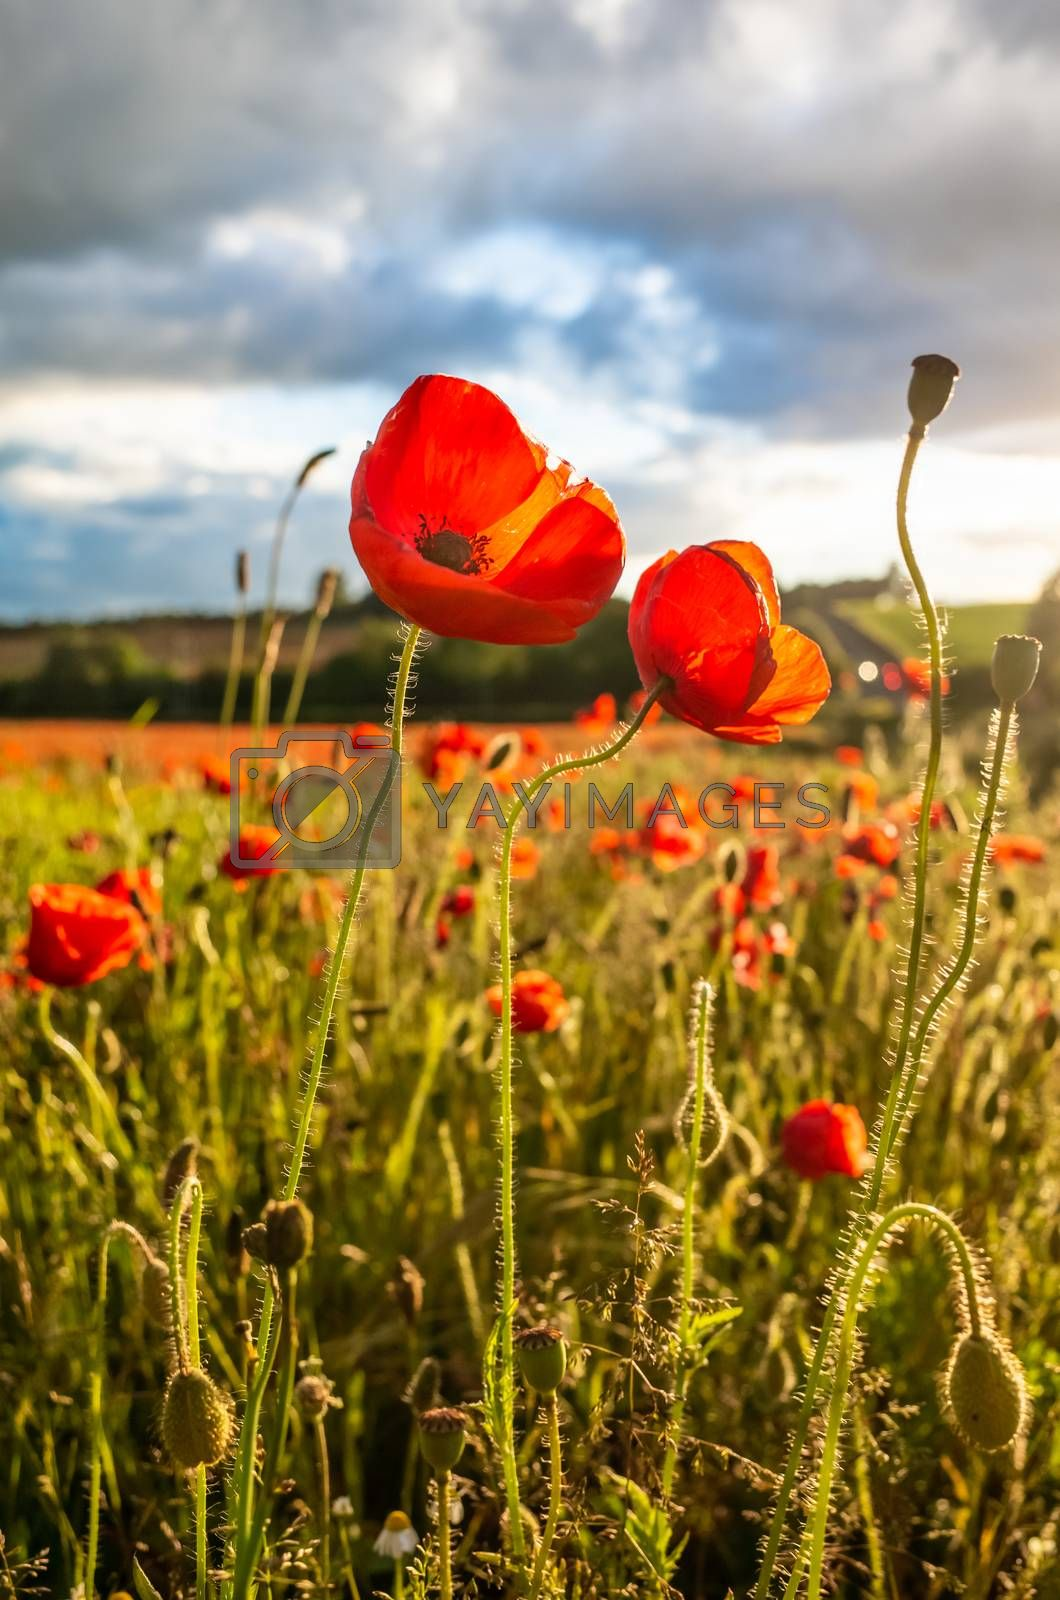 Royalty free image of Amazing Poppy Blossom in a Poppy Field by kstphotography